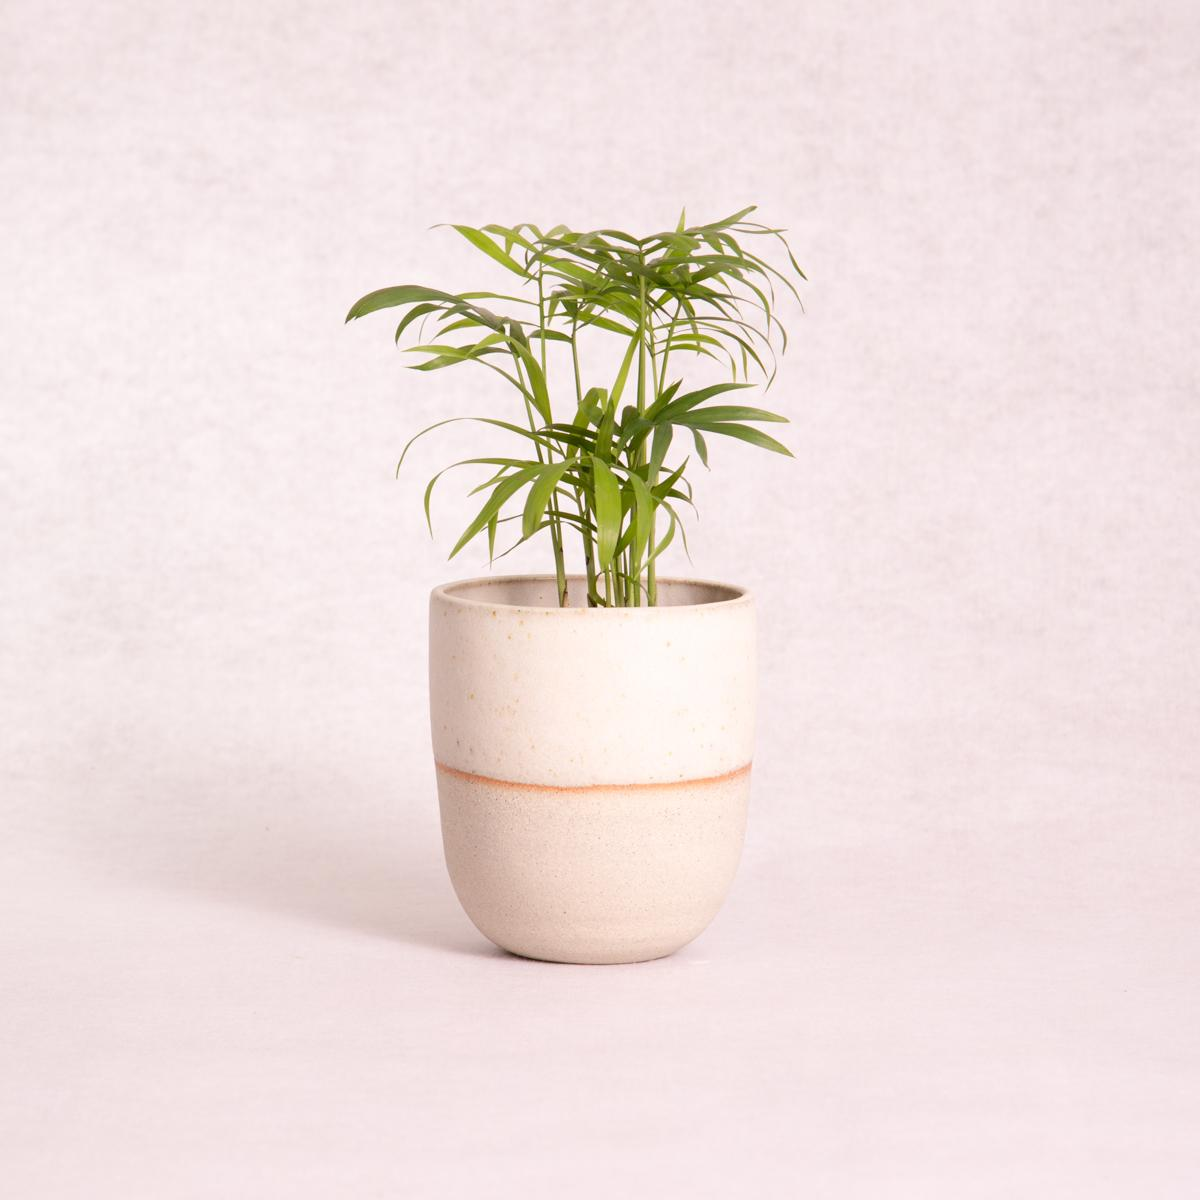 Ceramic Planter Pot - Small (Matte White Dip) - Ceramic Planter - Throw Some Seeds - Australian gardening gifts and eco products online!